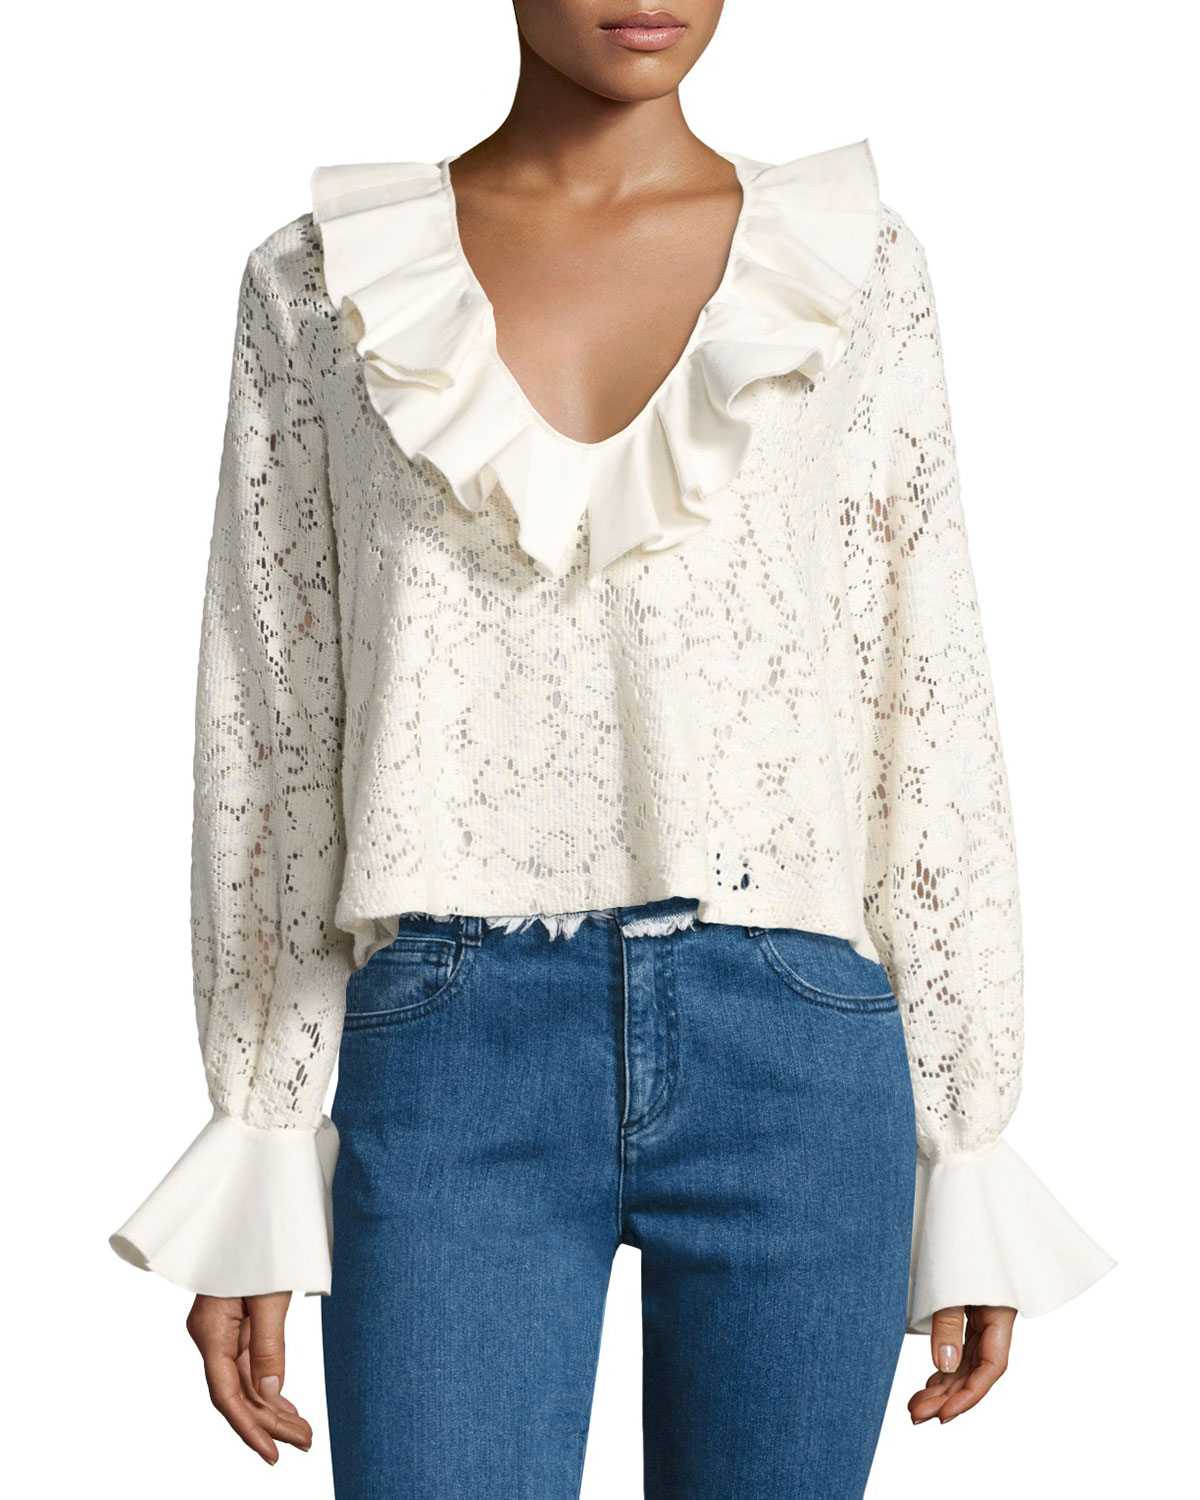 Affordable For Sale Outlet Countdown Package Ruffle-neck cotton top See By Chloé Best Choice PWzOjKw